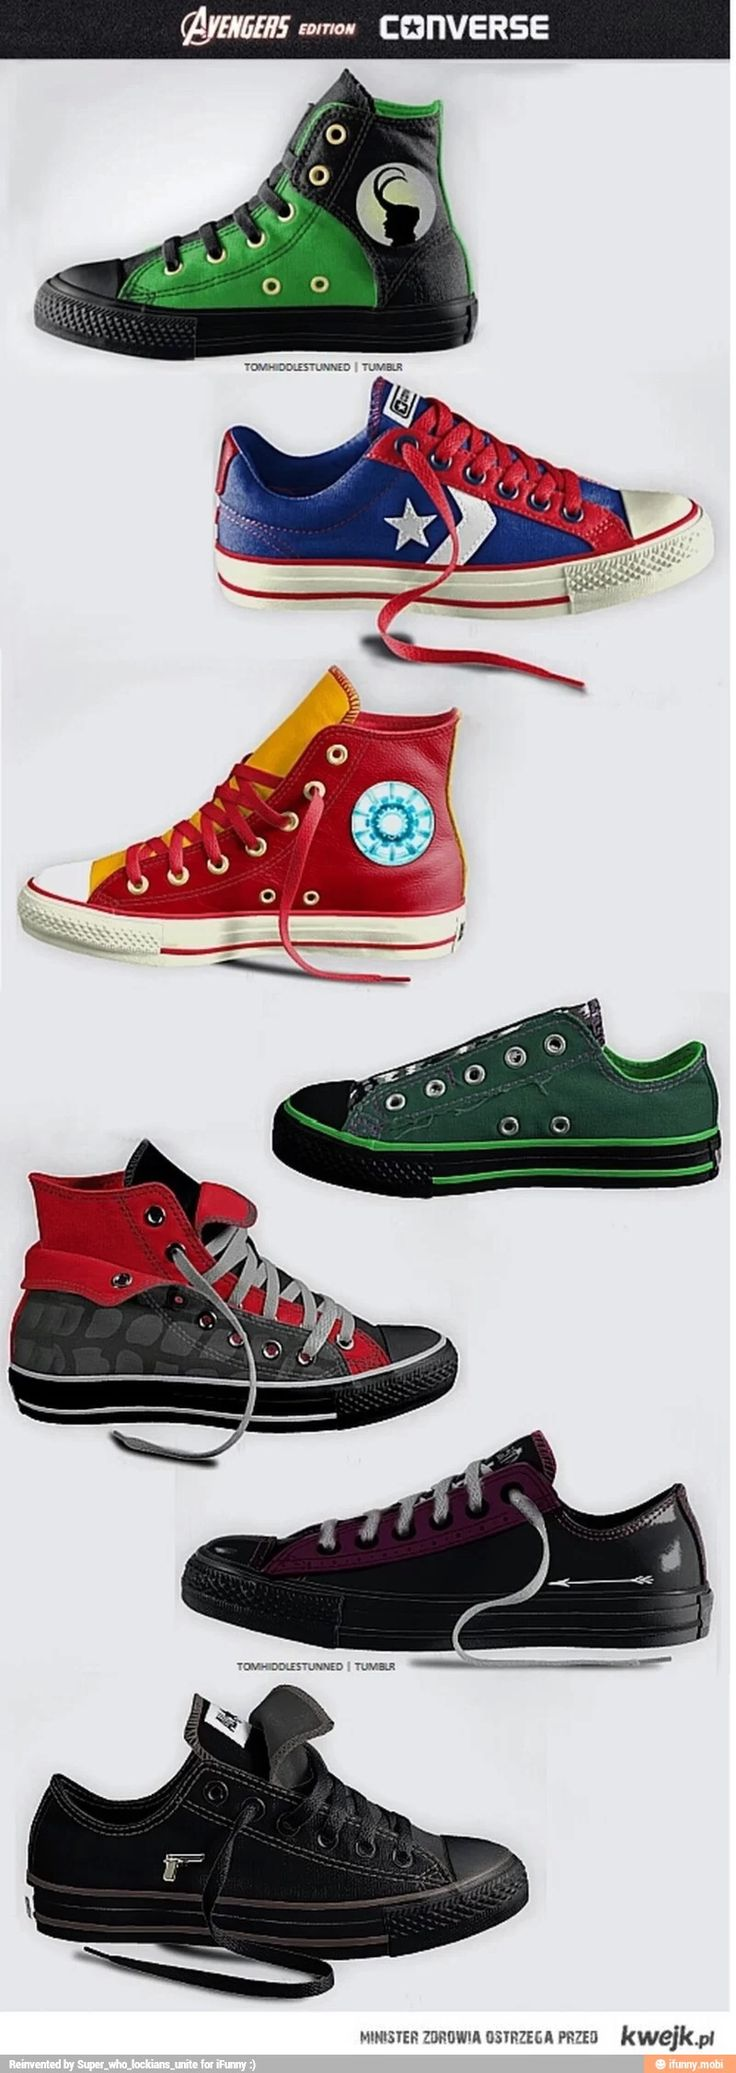 Avengers themed Converse